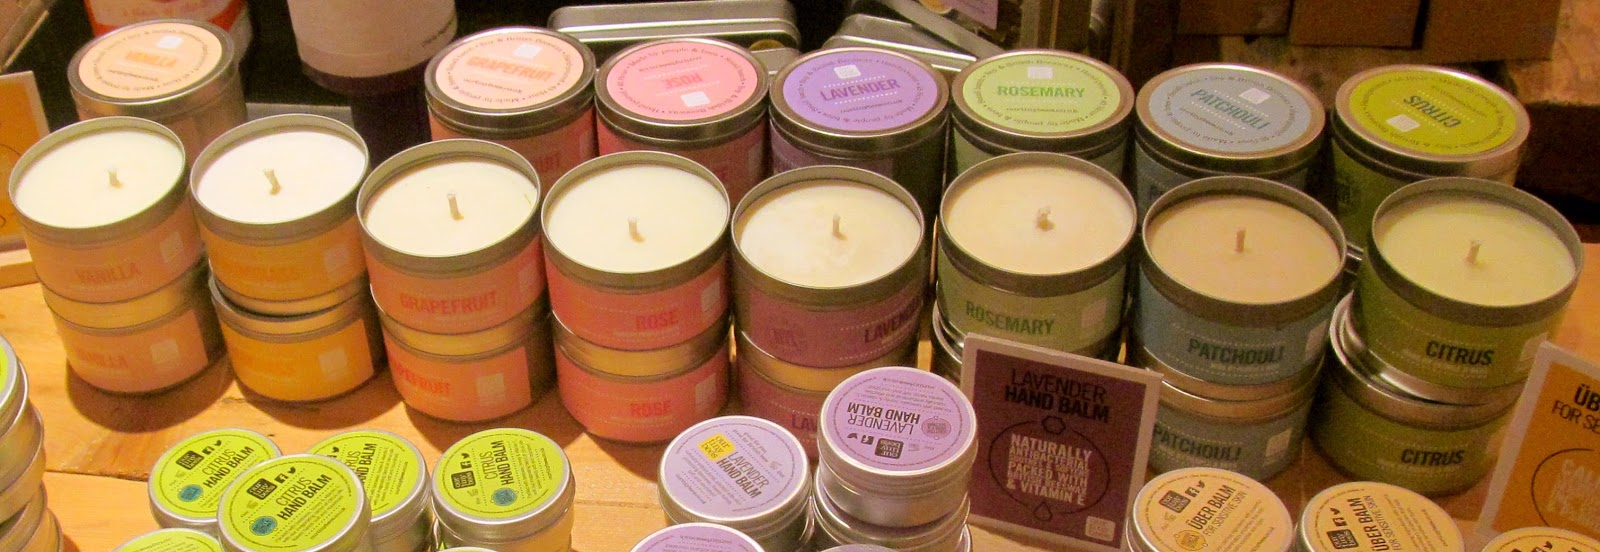 Our Tiny Bees candles in Bird's Yard